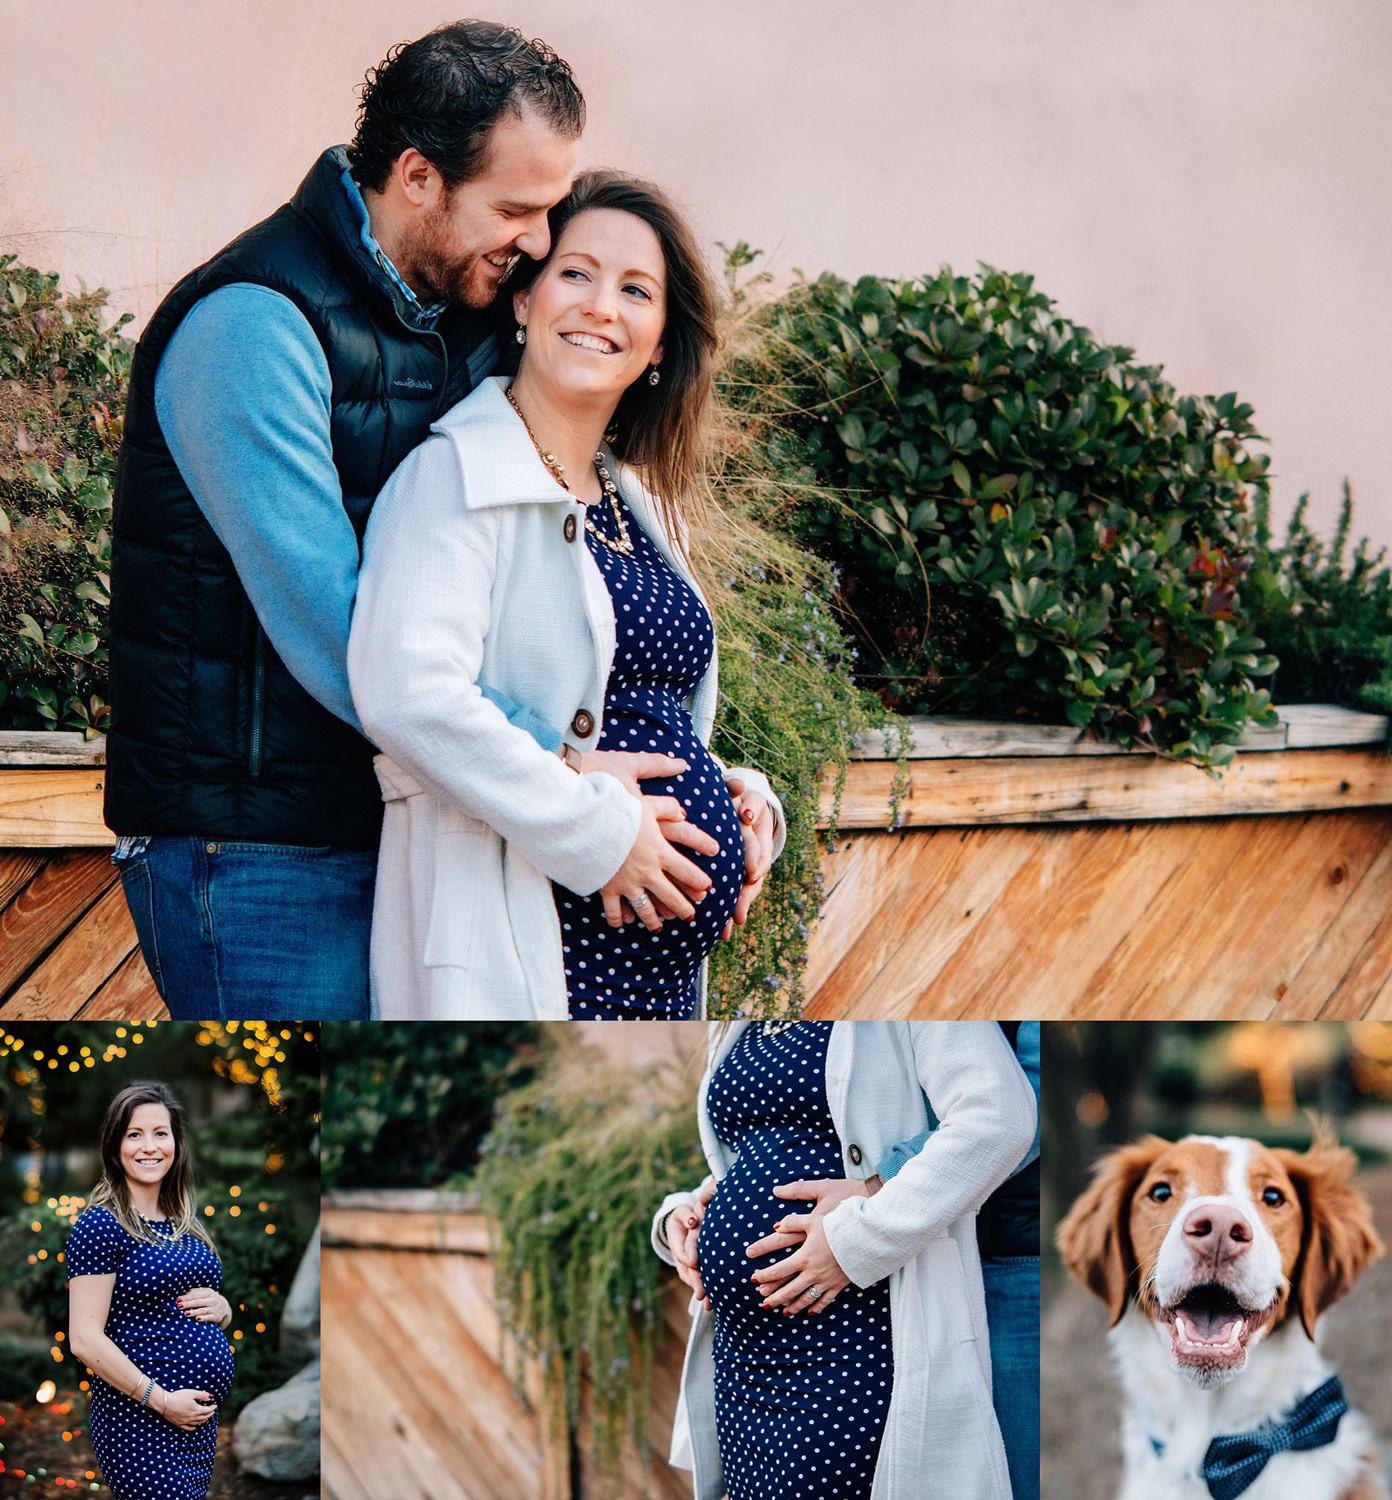 norfolk-maternity-session-by-melissa-bliss-photography-urban-waterfront-portraits.jpg